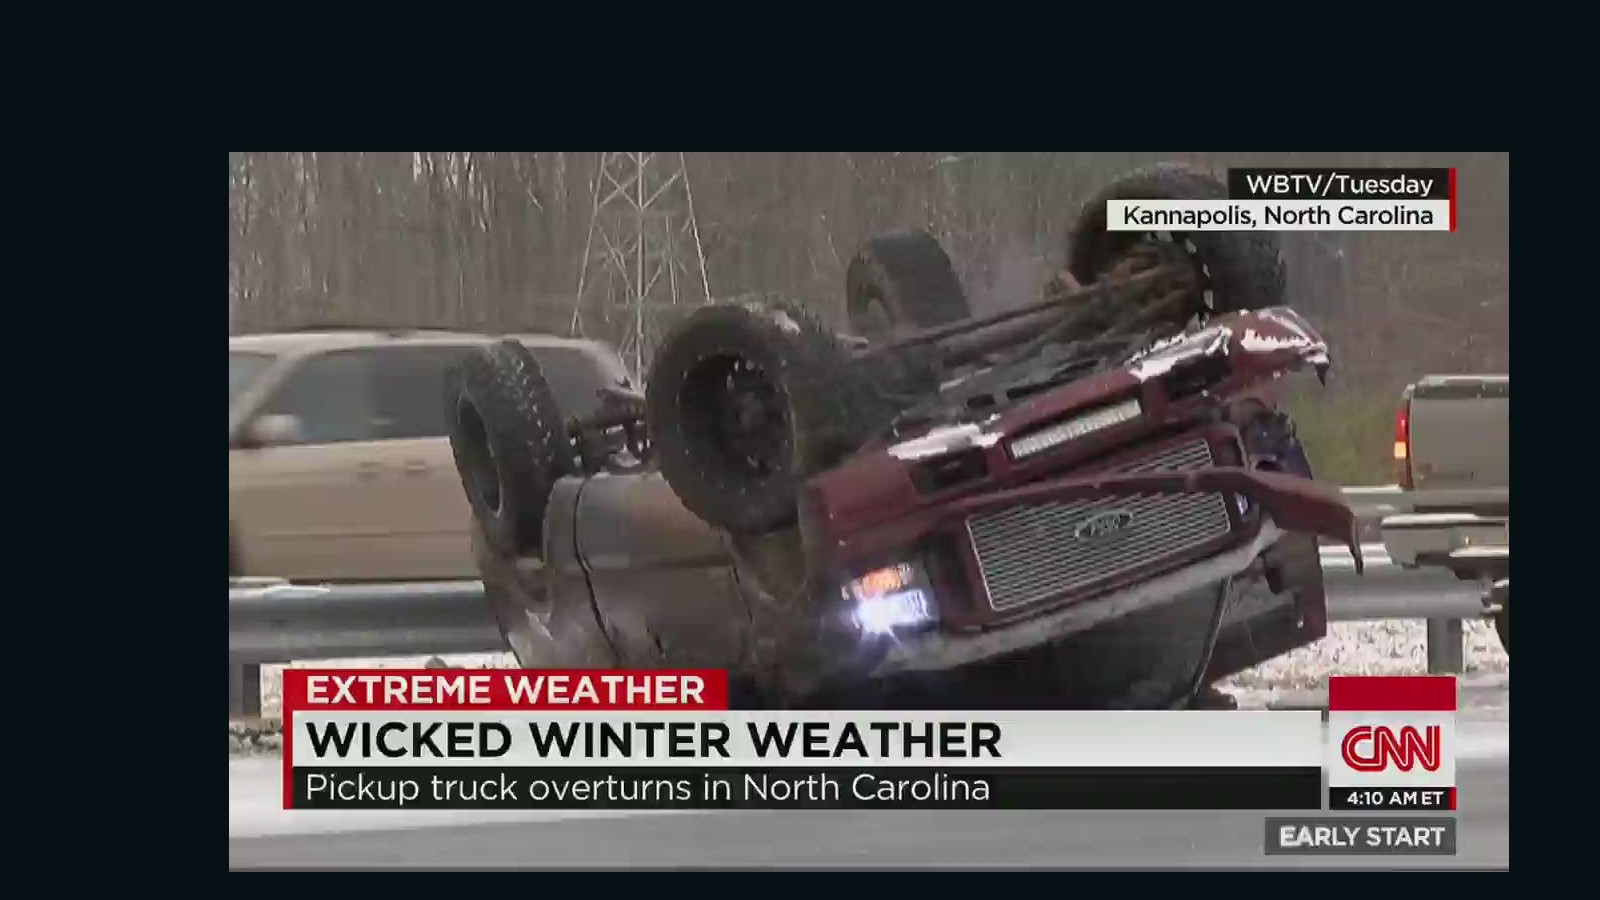 South gets hit with another winter storm - CNN